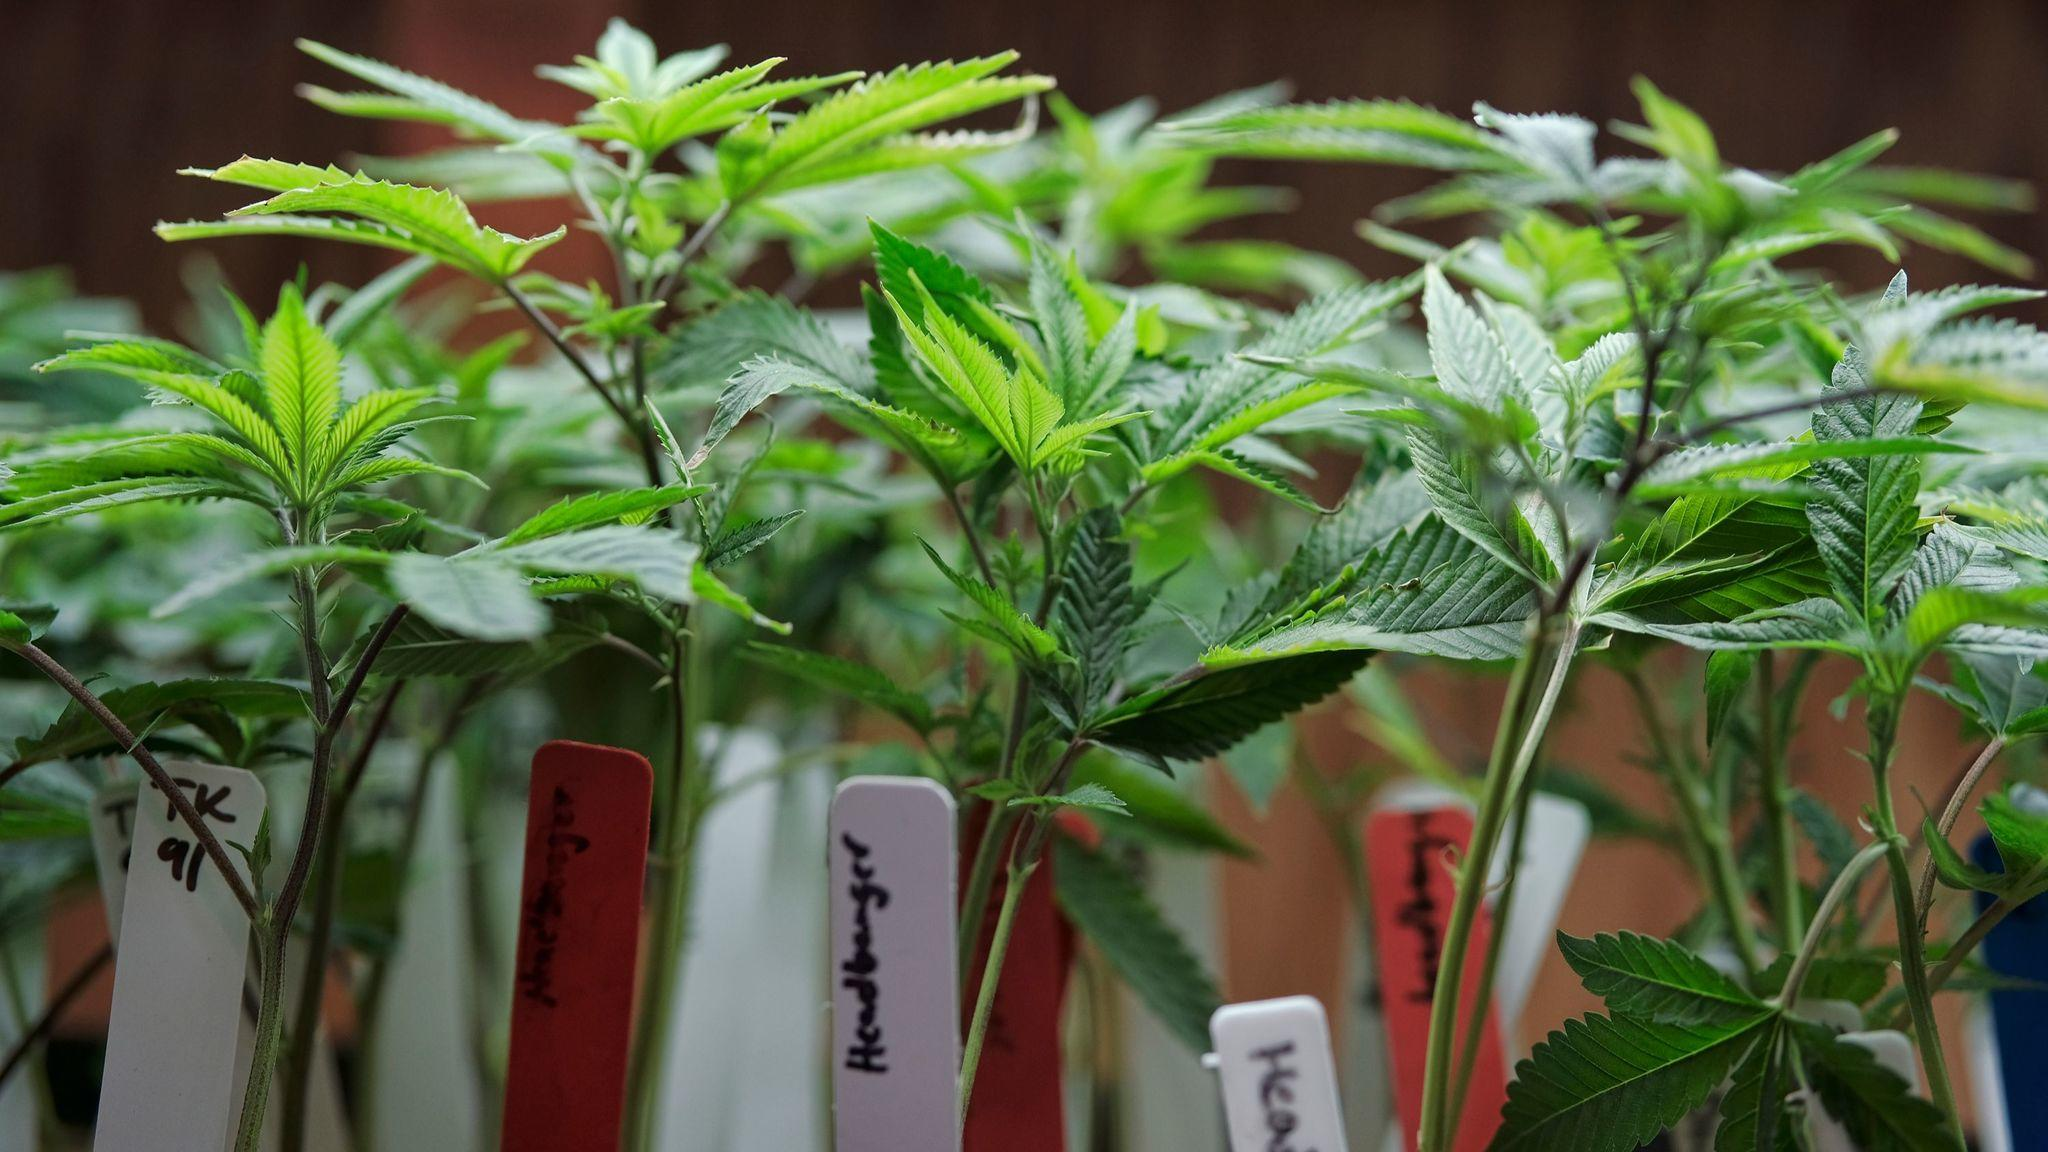 An unlikely battle over marijuana sales has broken out in pot-friendly San Francisco. (Richard Vogel / Associated Press)